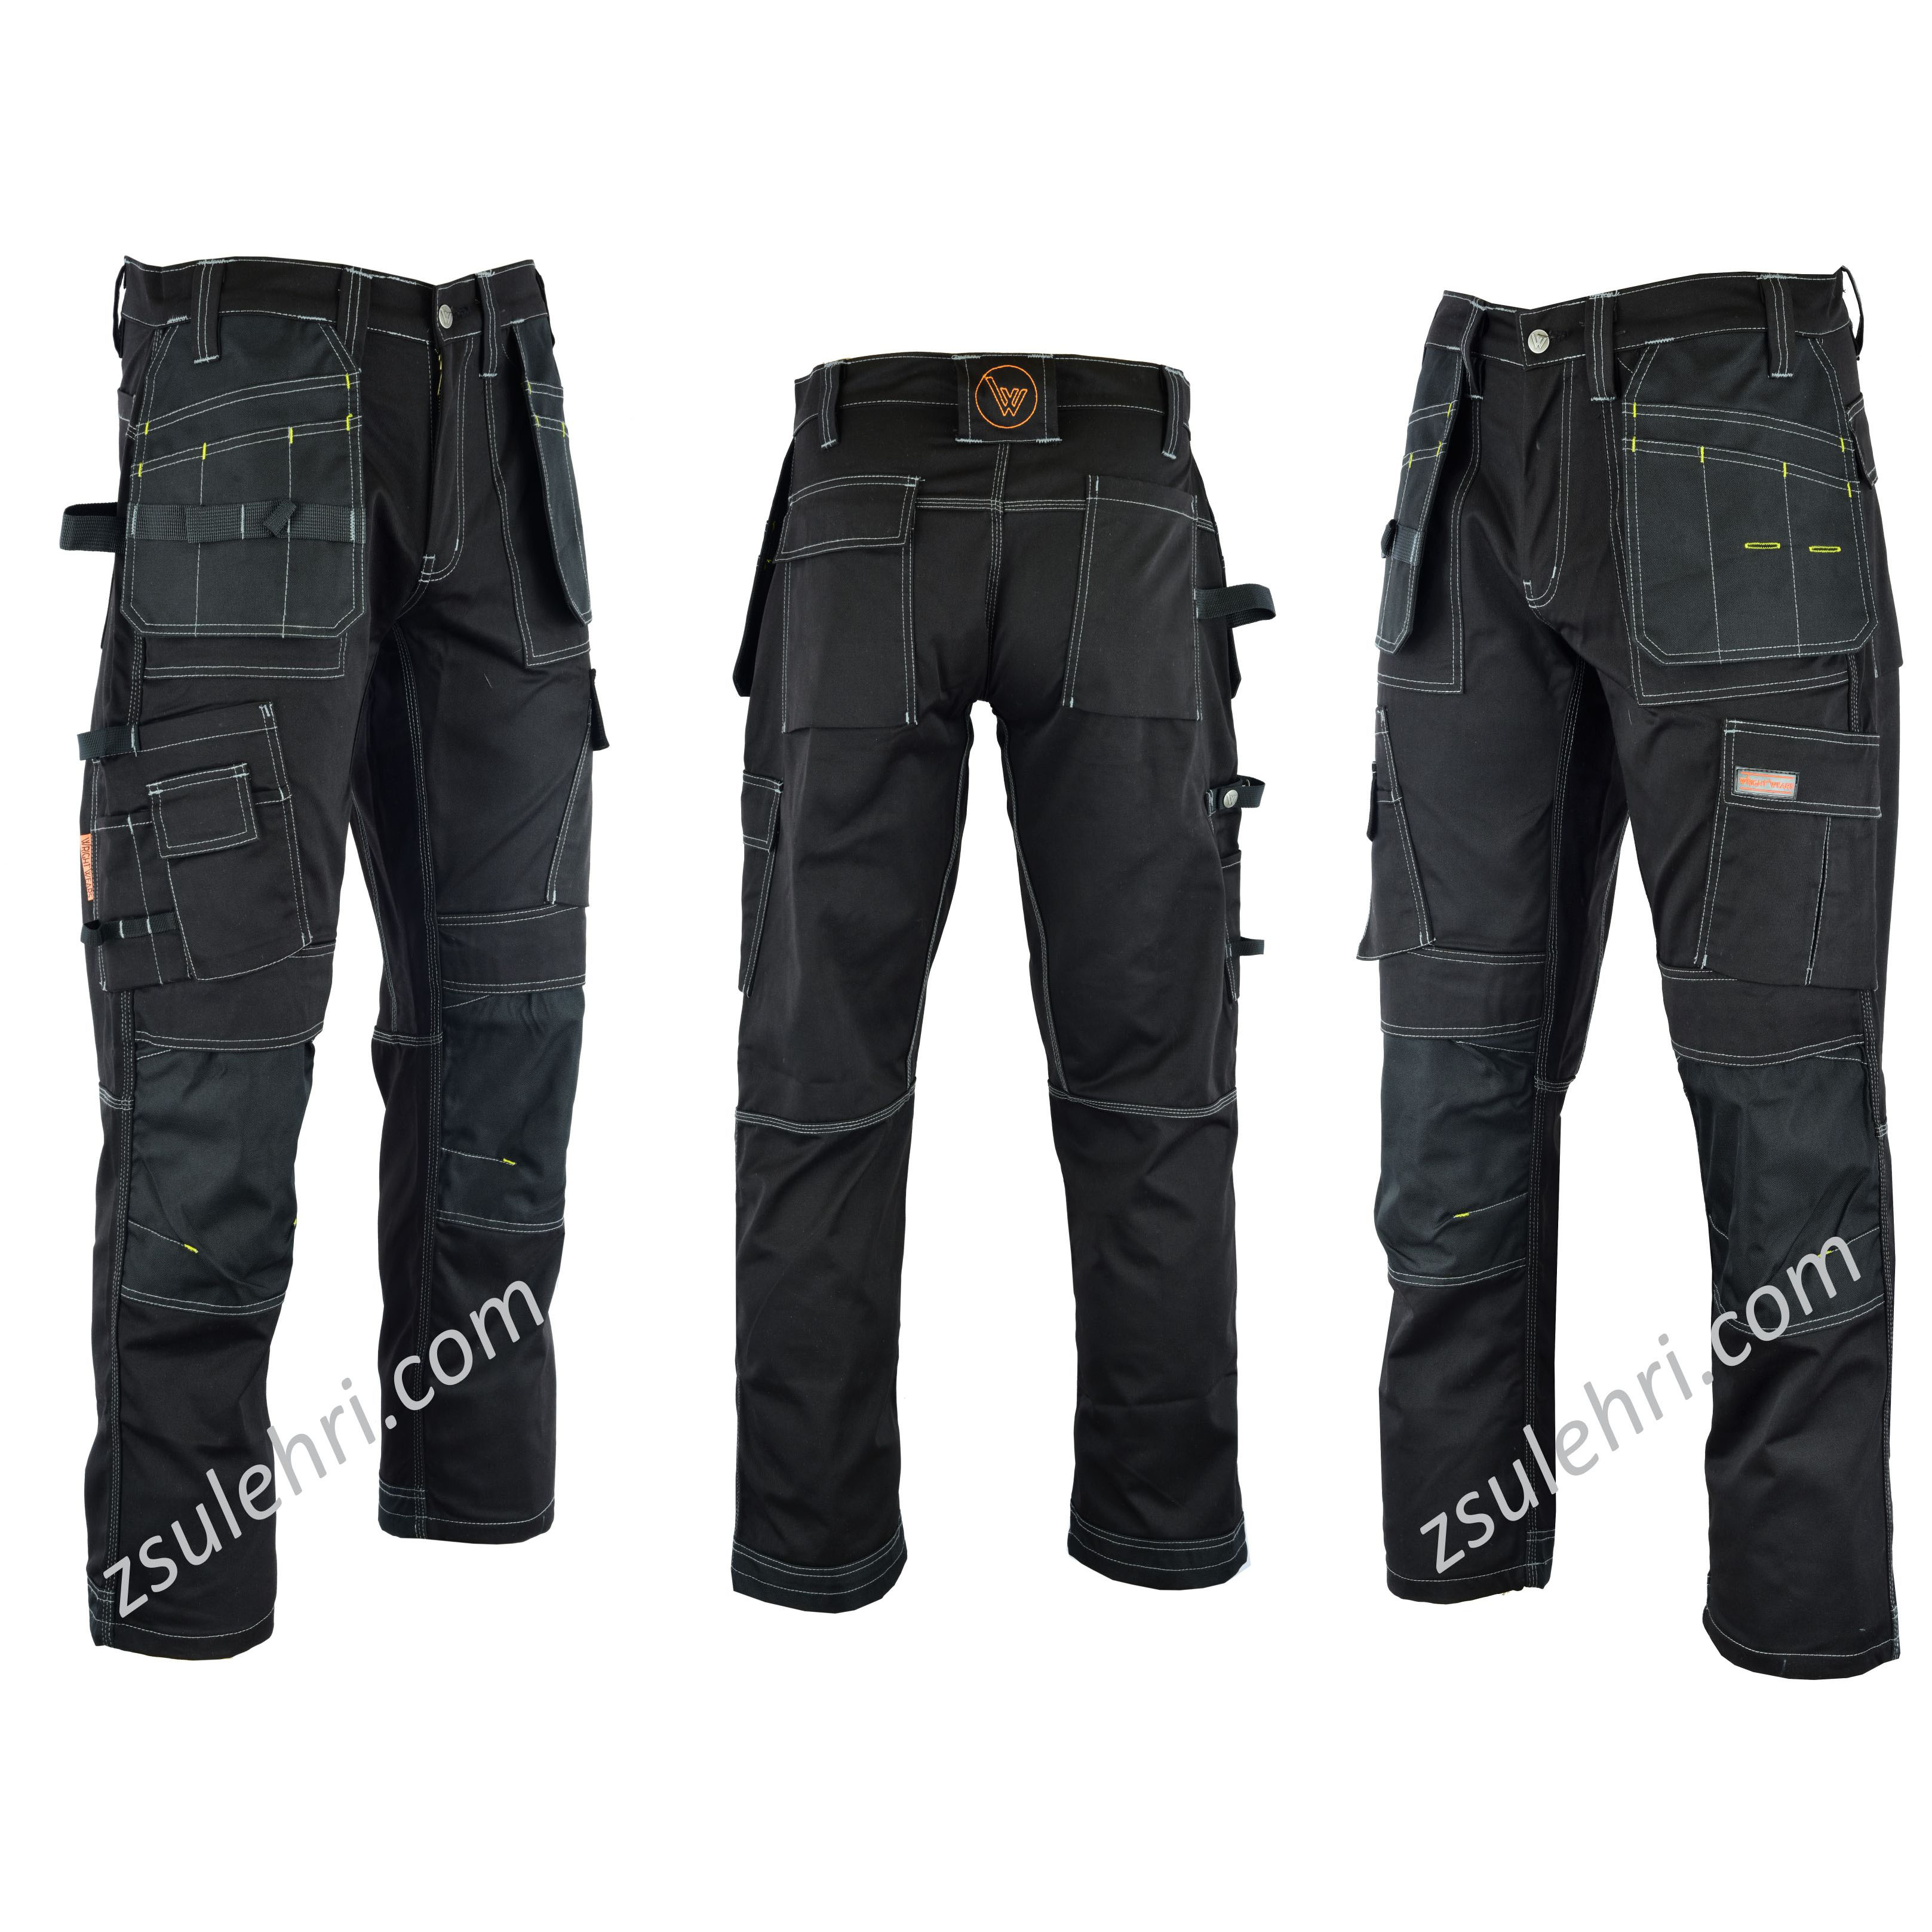 Mens Cargo Work Pants Keen Pockets Industrial Trousers Construction Pants -  Buy High Quality Cargo Pants,Black Cargo Pants Worker Pants,Durable Work